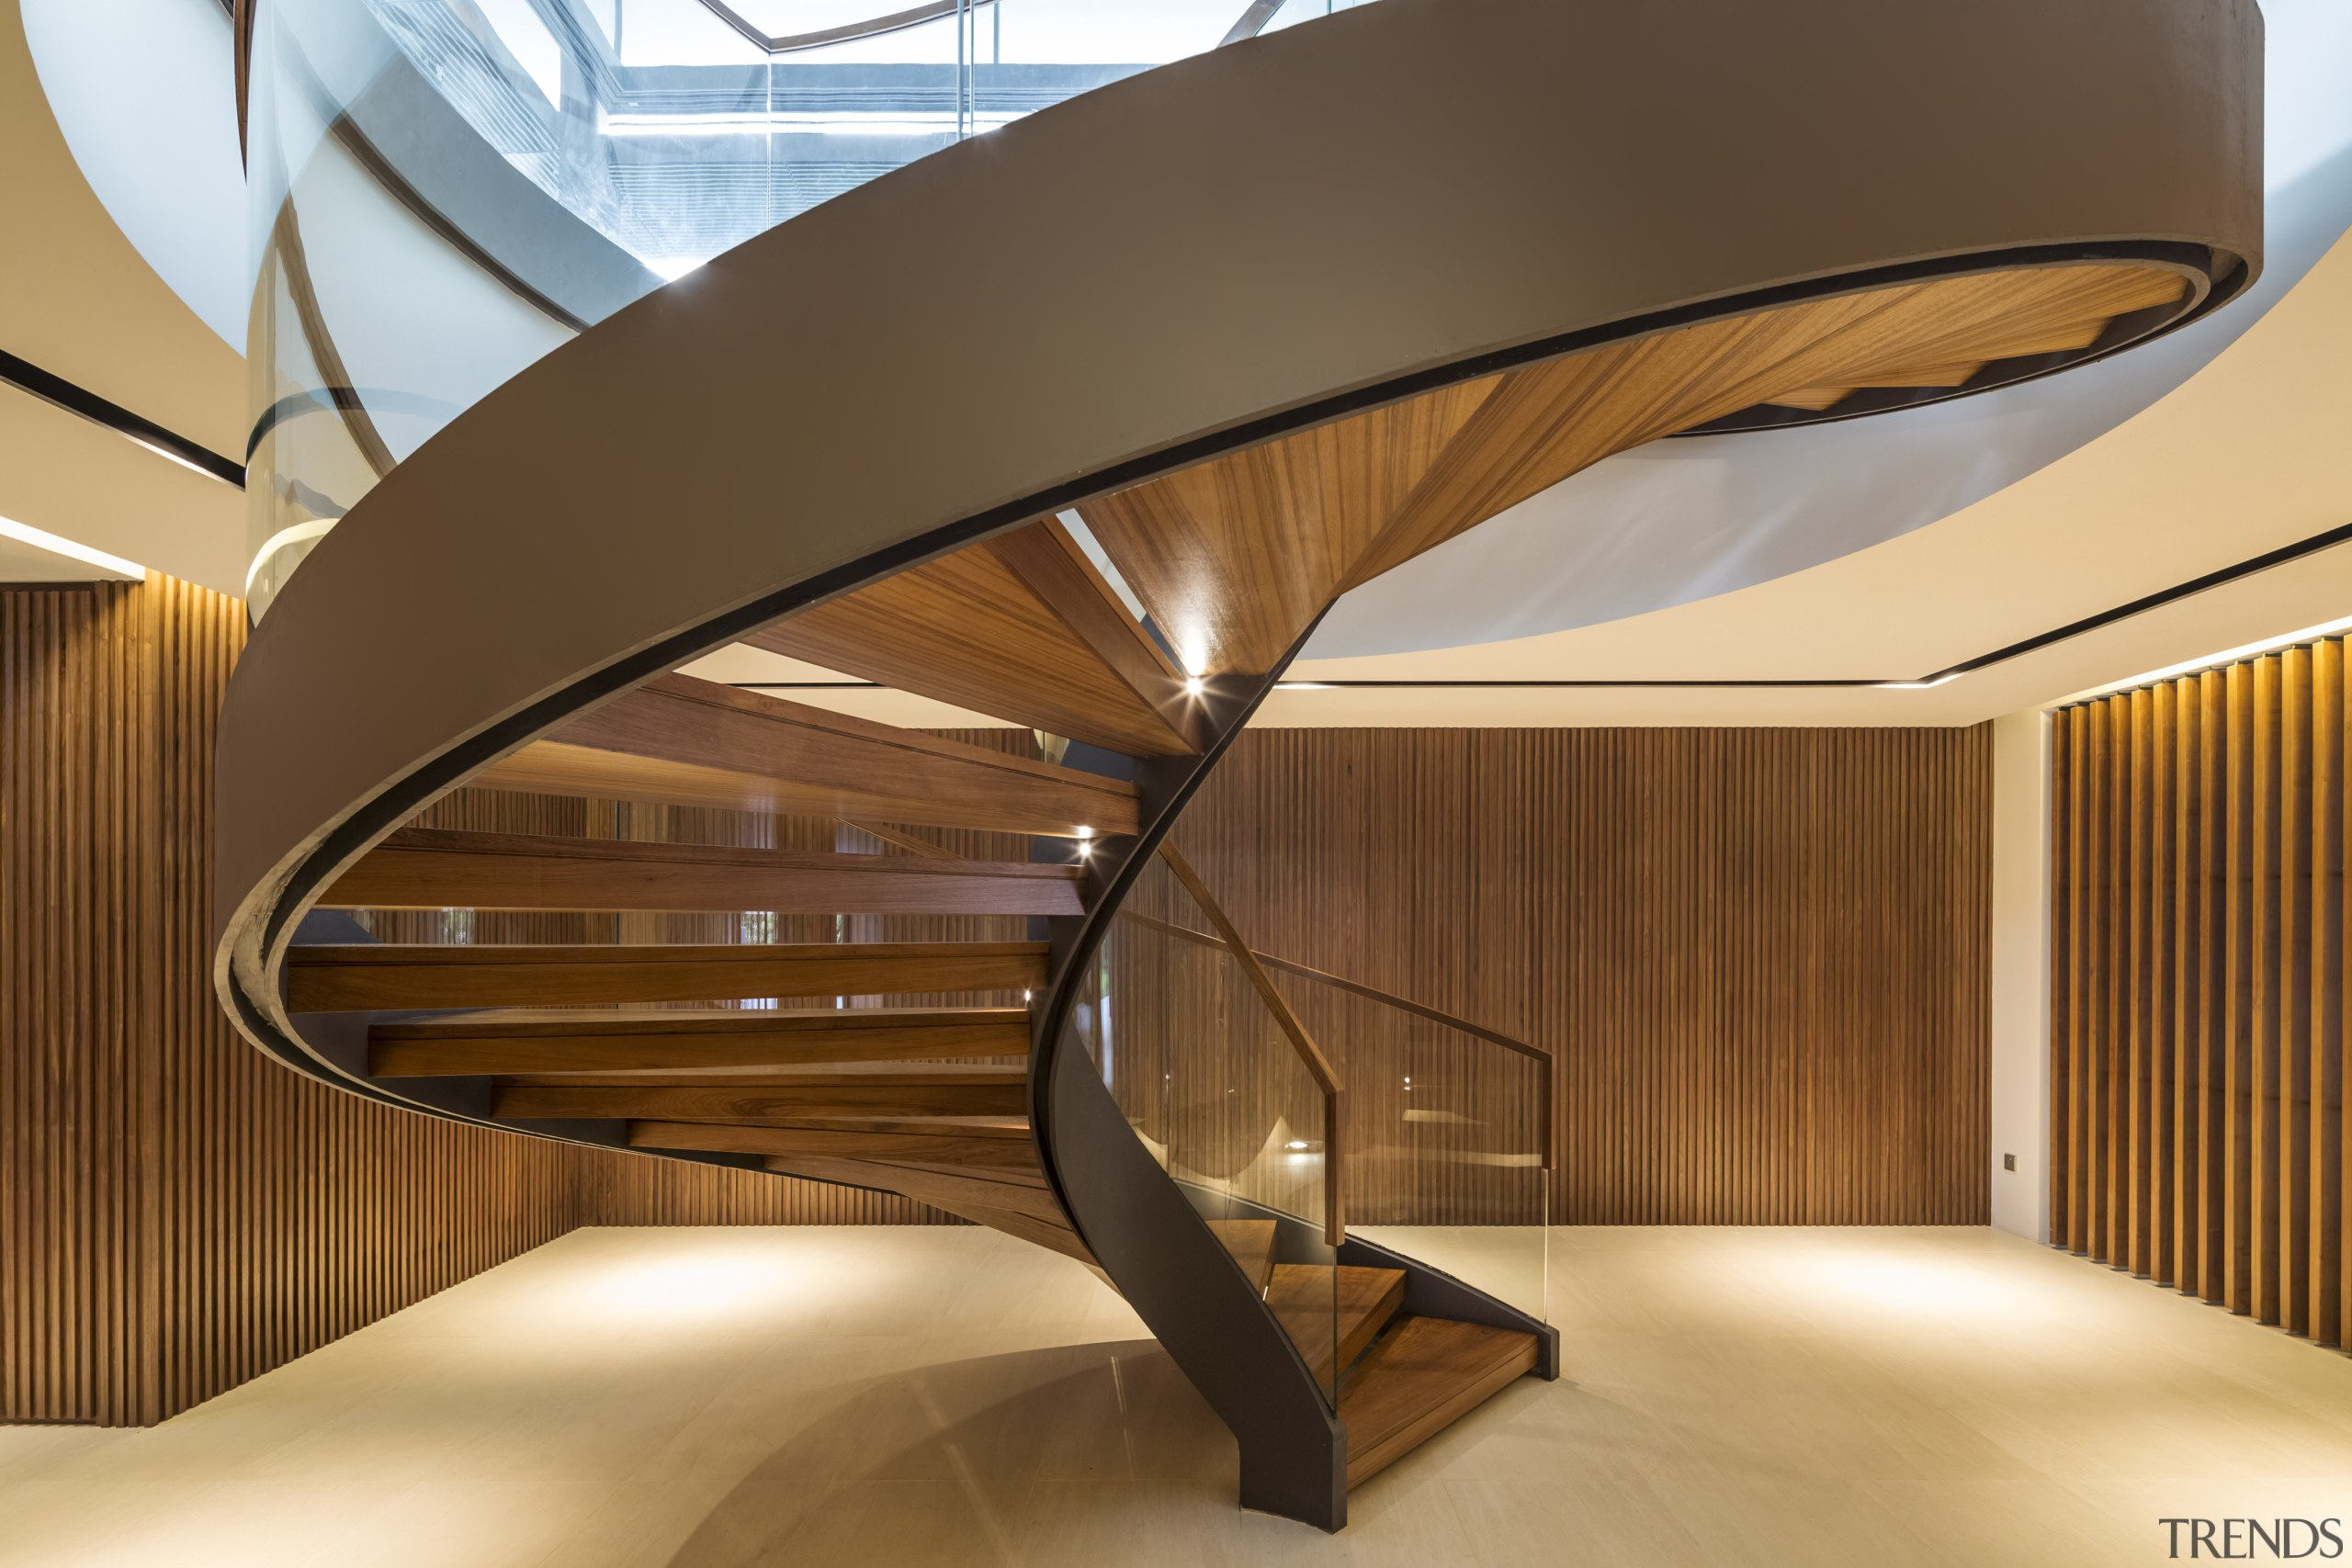 A timber-lined lobby containing a dramatic steel and architecture, ceiling, daylighting, interior design, lobby, product design, stairs, wood, brown